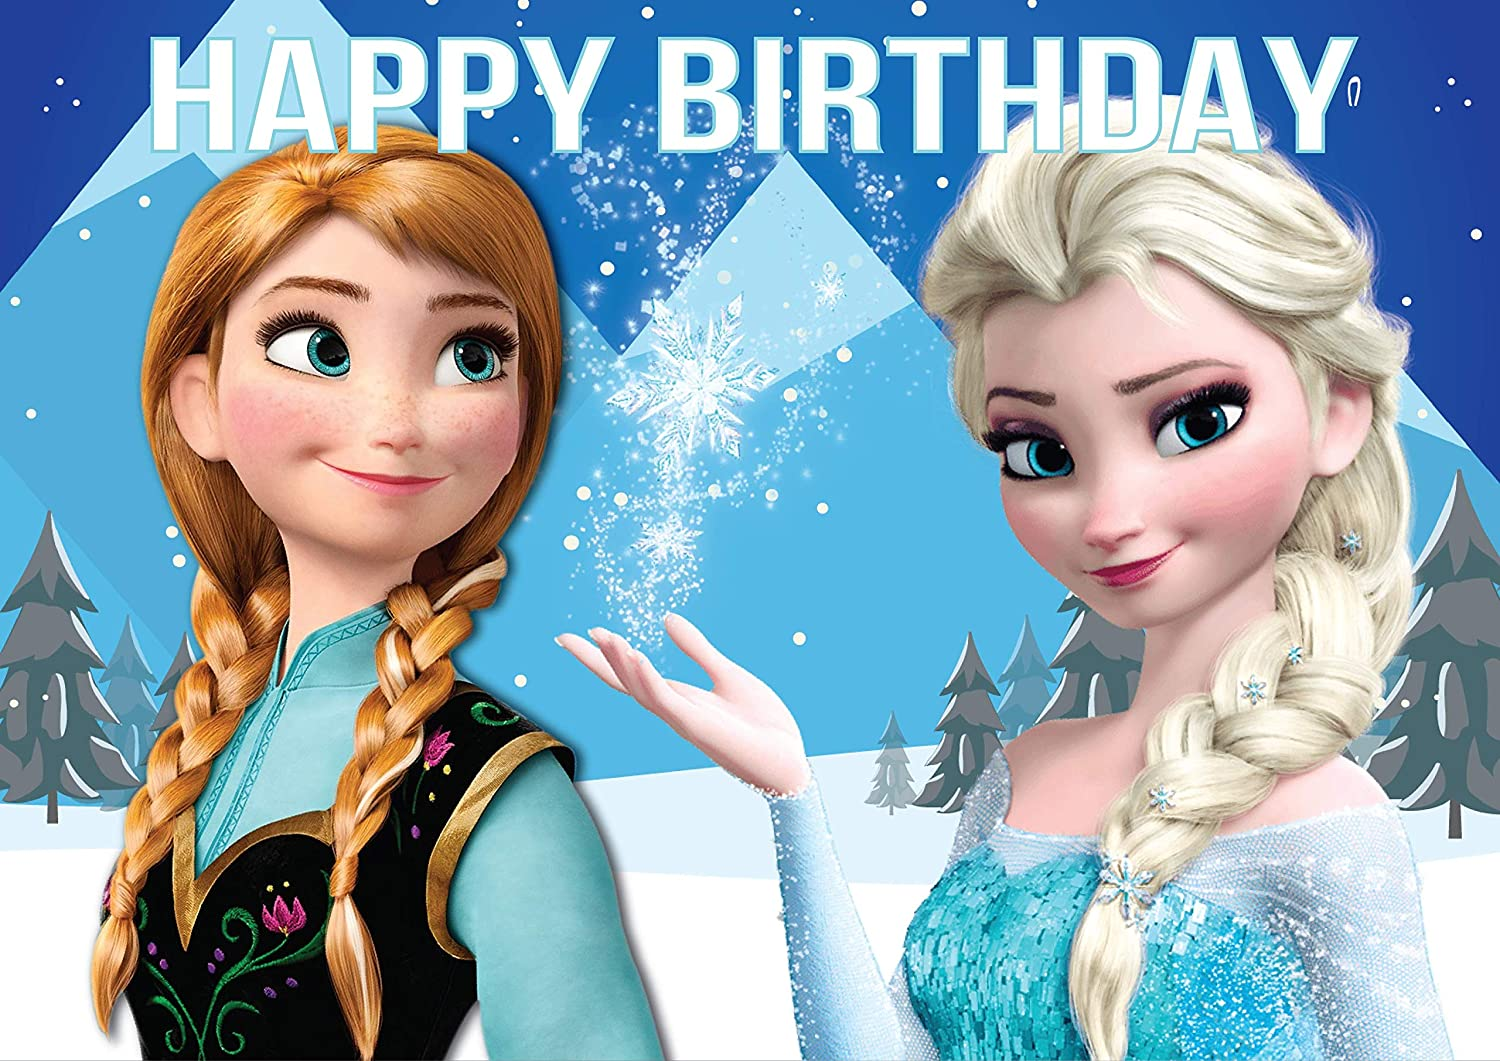 8.3 x 11.7 Inch Edible Square Cake Toppers – Frozen Themed Birthday Party Collection of Edible Cake Decorations